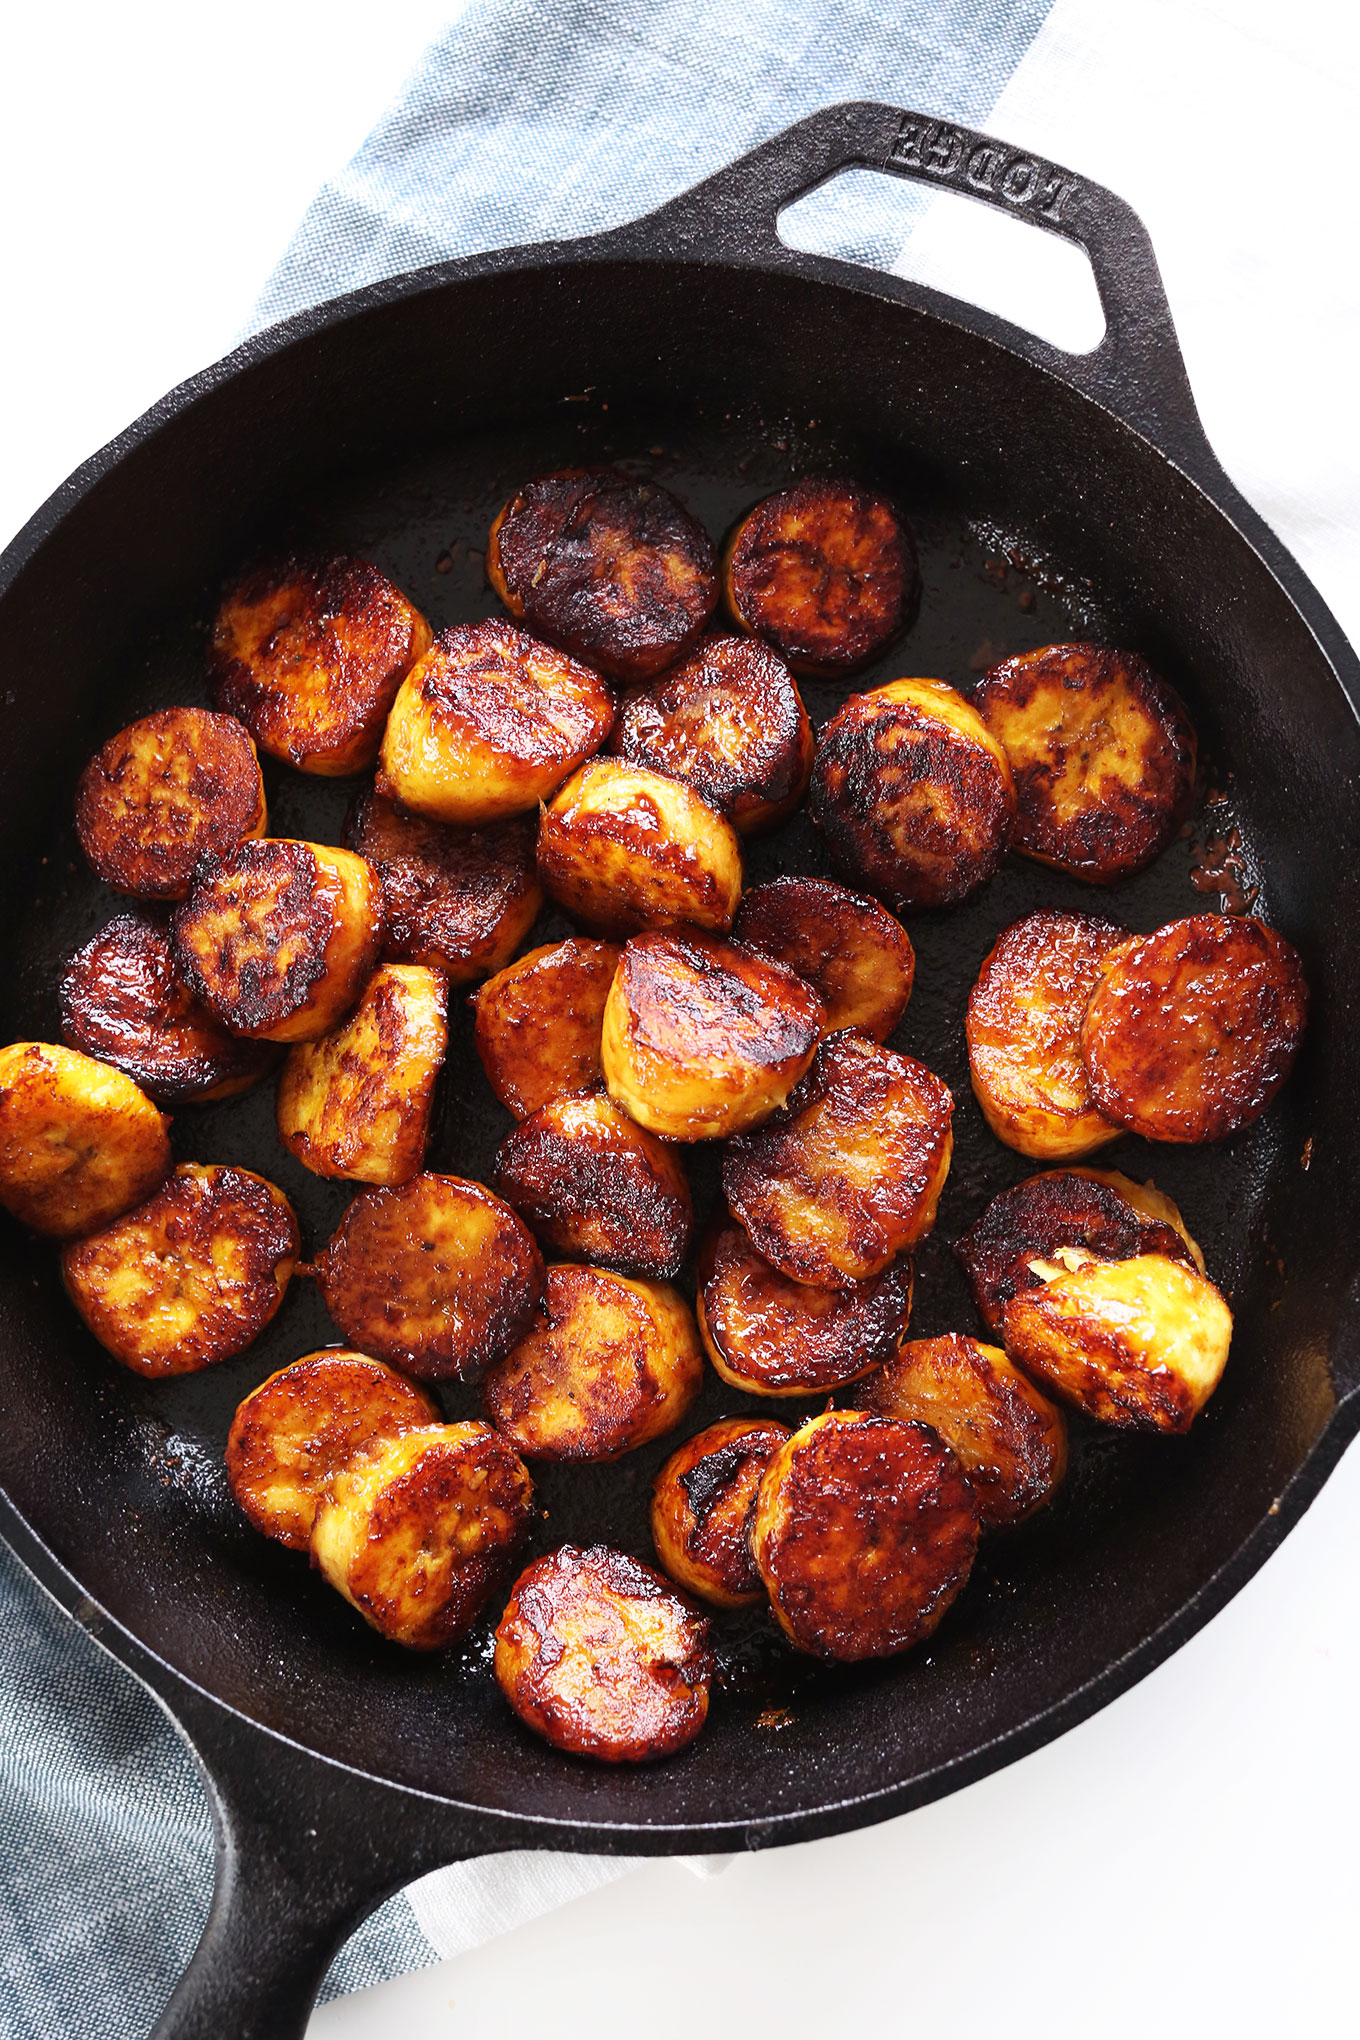 Cast-iron skillet with Amazing Coconut Sugar Caramelized Plantains